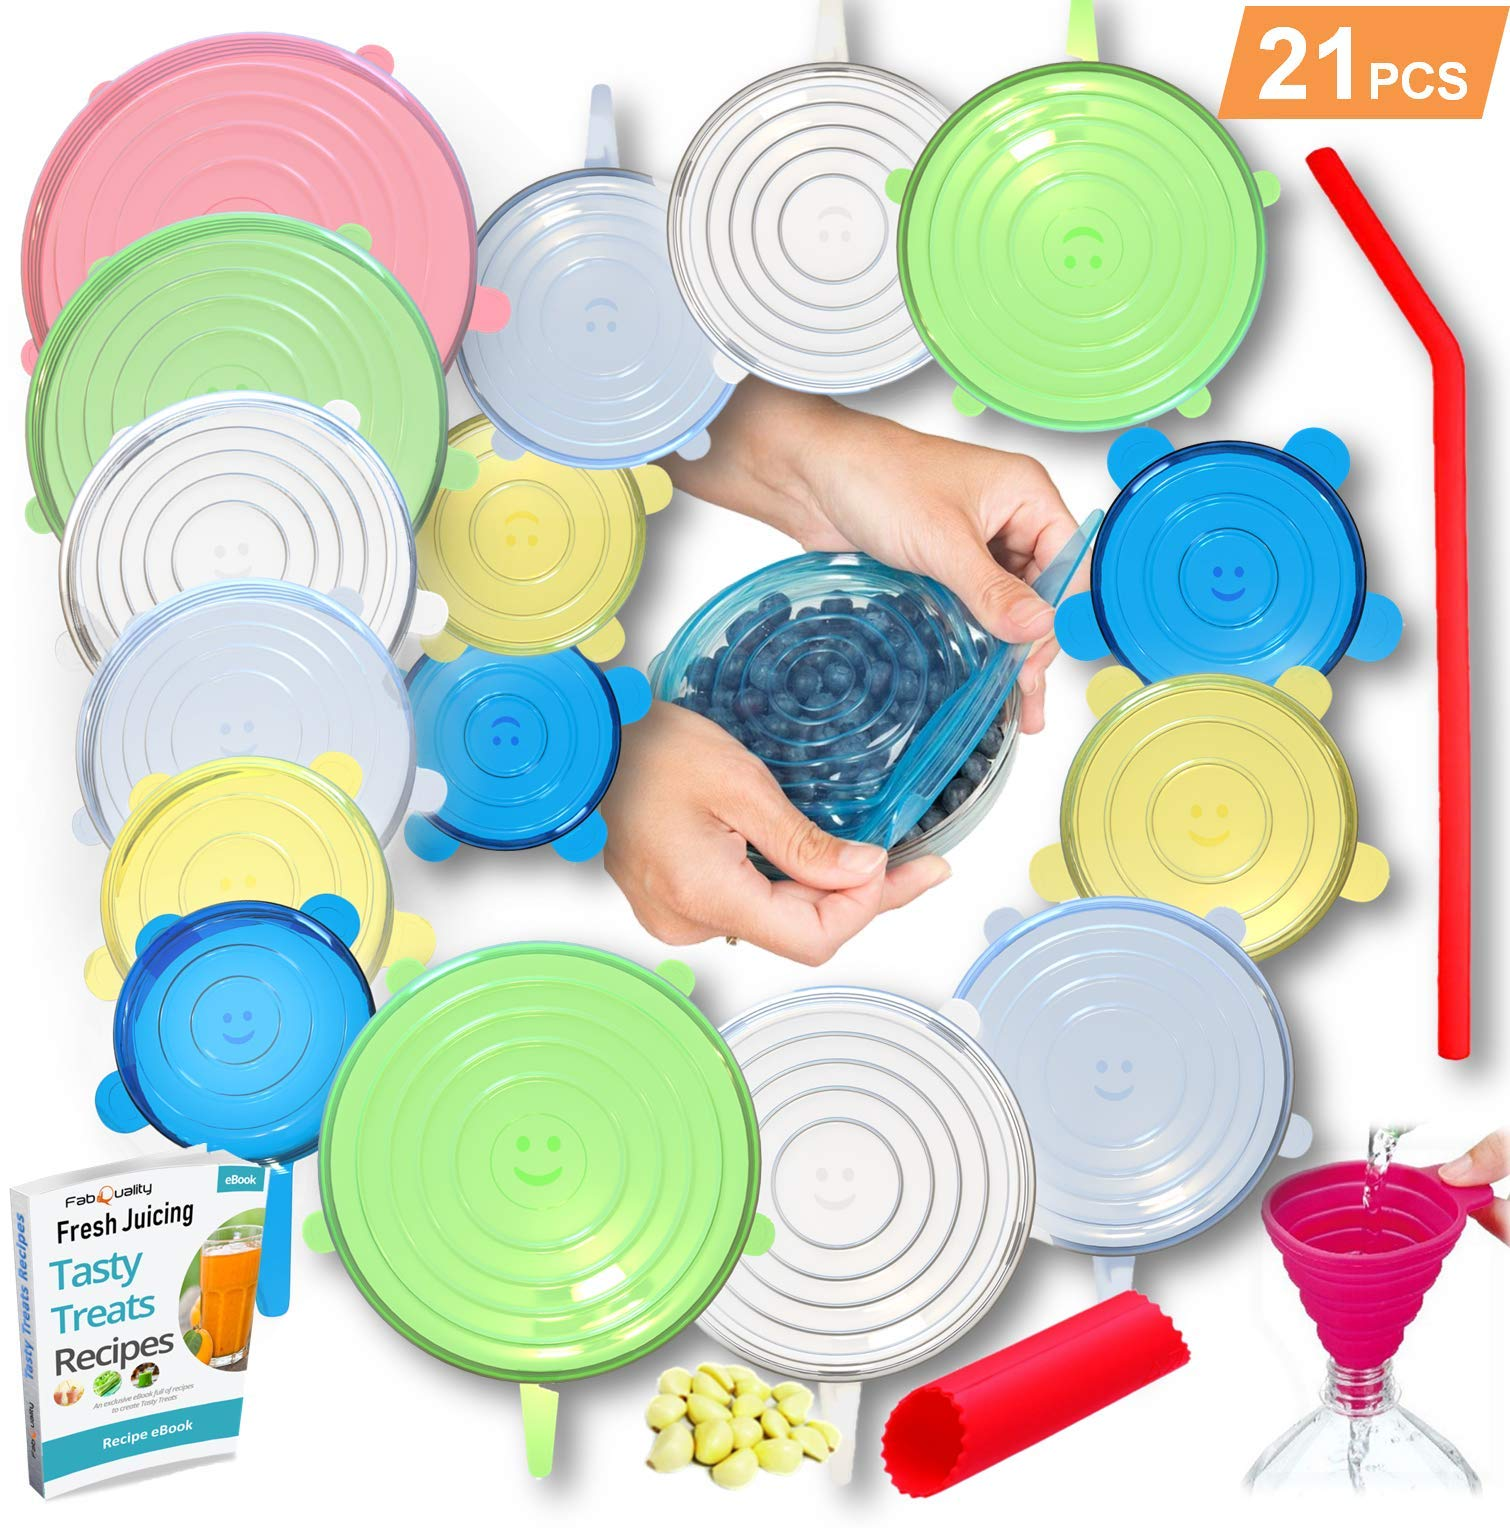 21PCS - 18pcs Silicone Stretch Lids,with Oil funnel, garlic peeler and straw Various Sizes and Shape of Containers,Reusable, Durable and Expandable Food Covers, Keeping Food Fresh, Dishwasher and Fre by fabquality (Image #1)